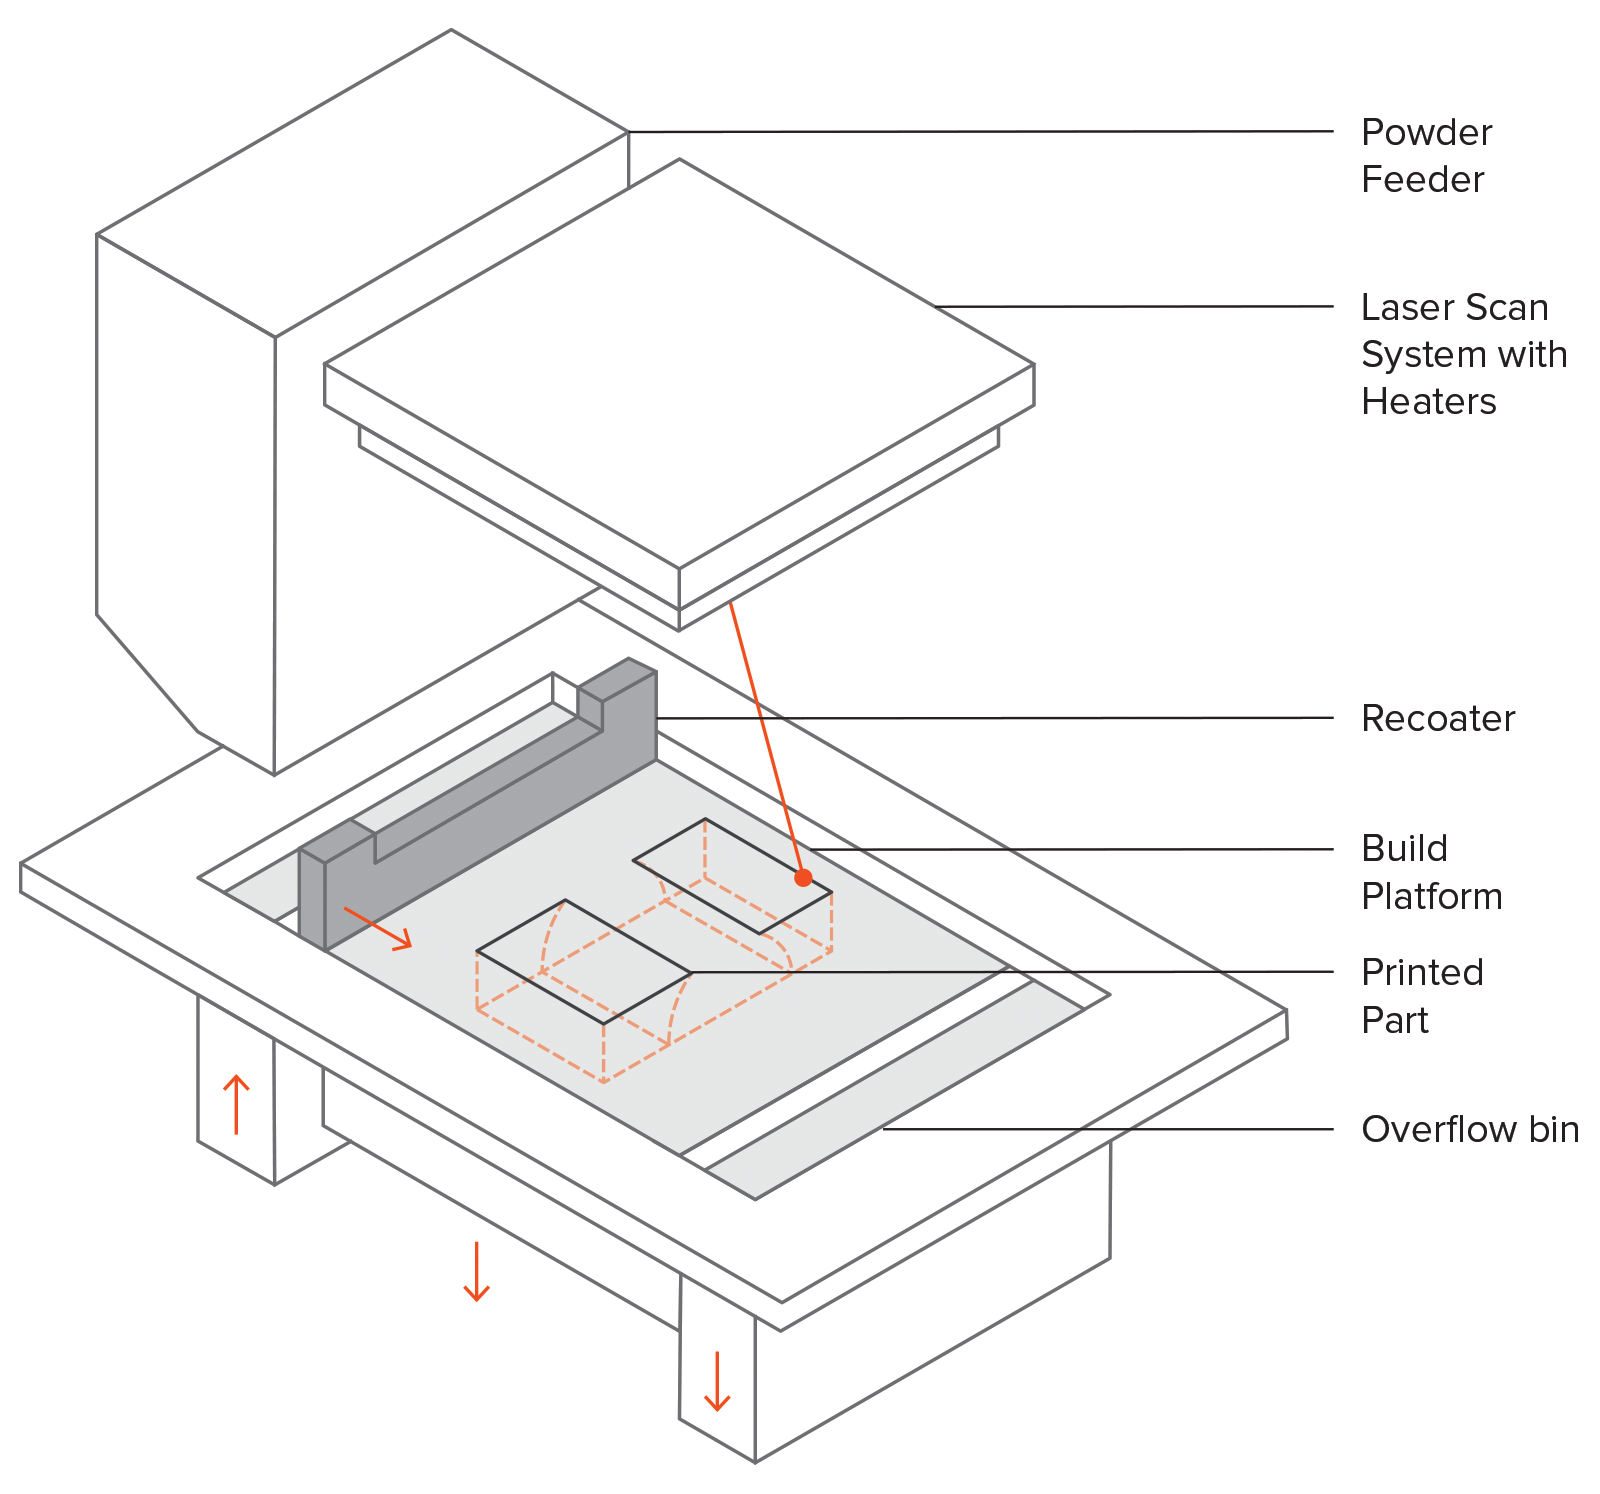 How To Design Parts For Sls 3d Printing Hubs Hot Grips Wiring Diagram A Schematic Showing The General Layout Of An Machine